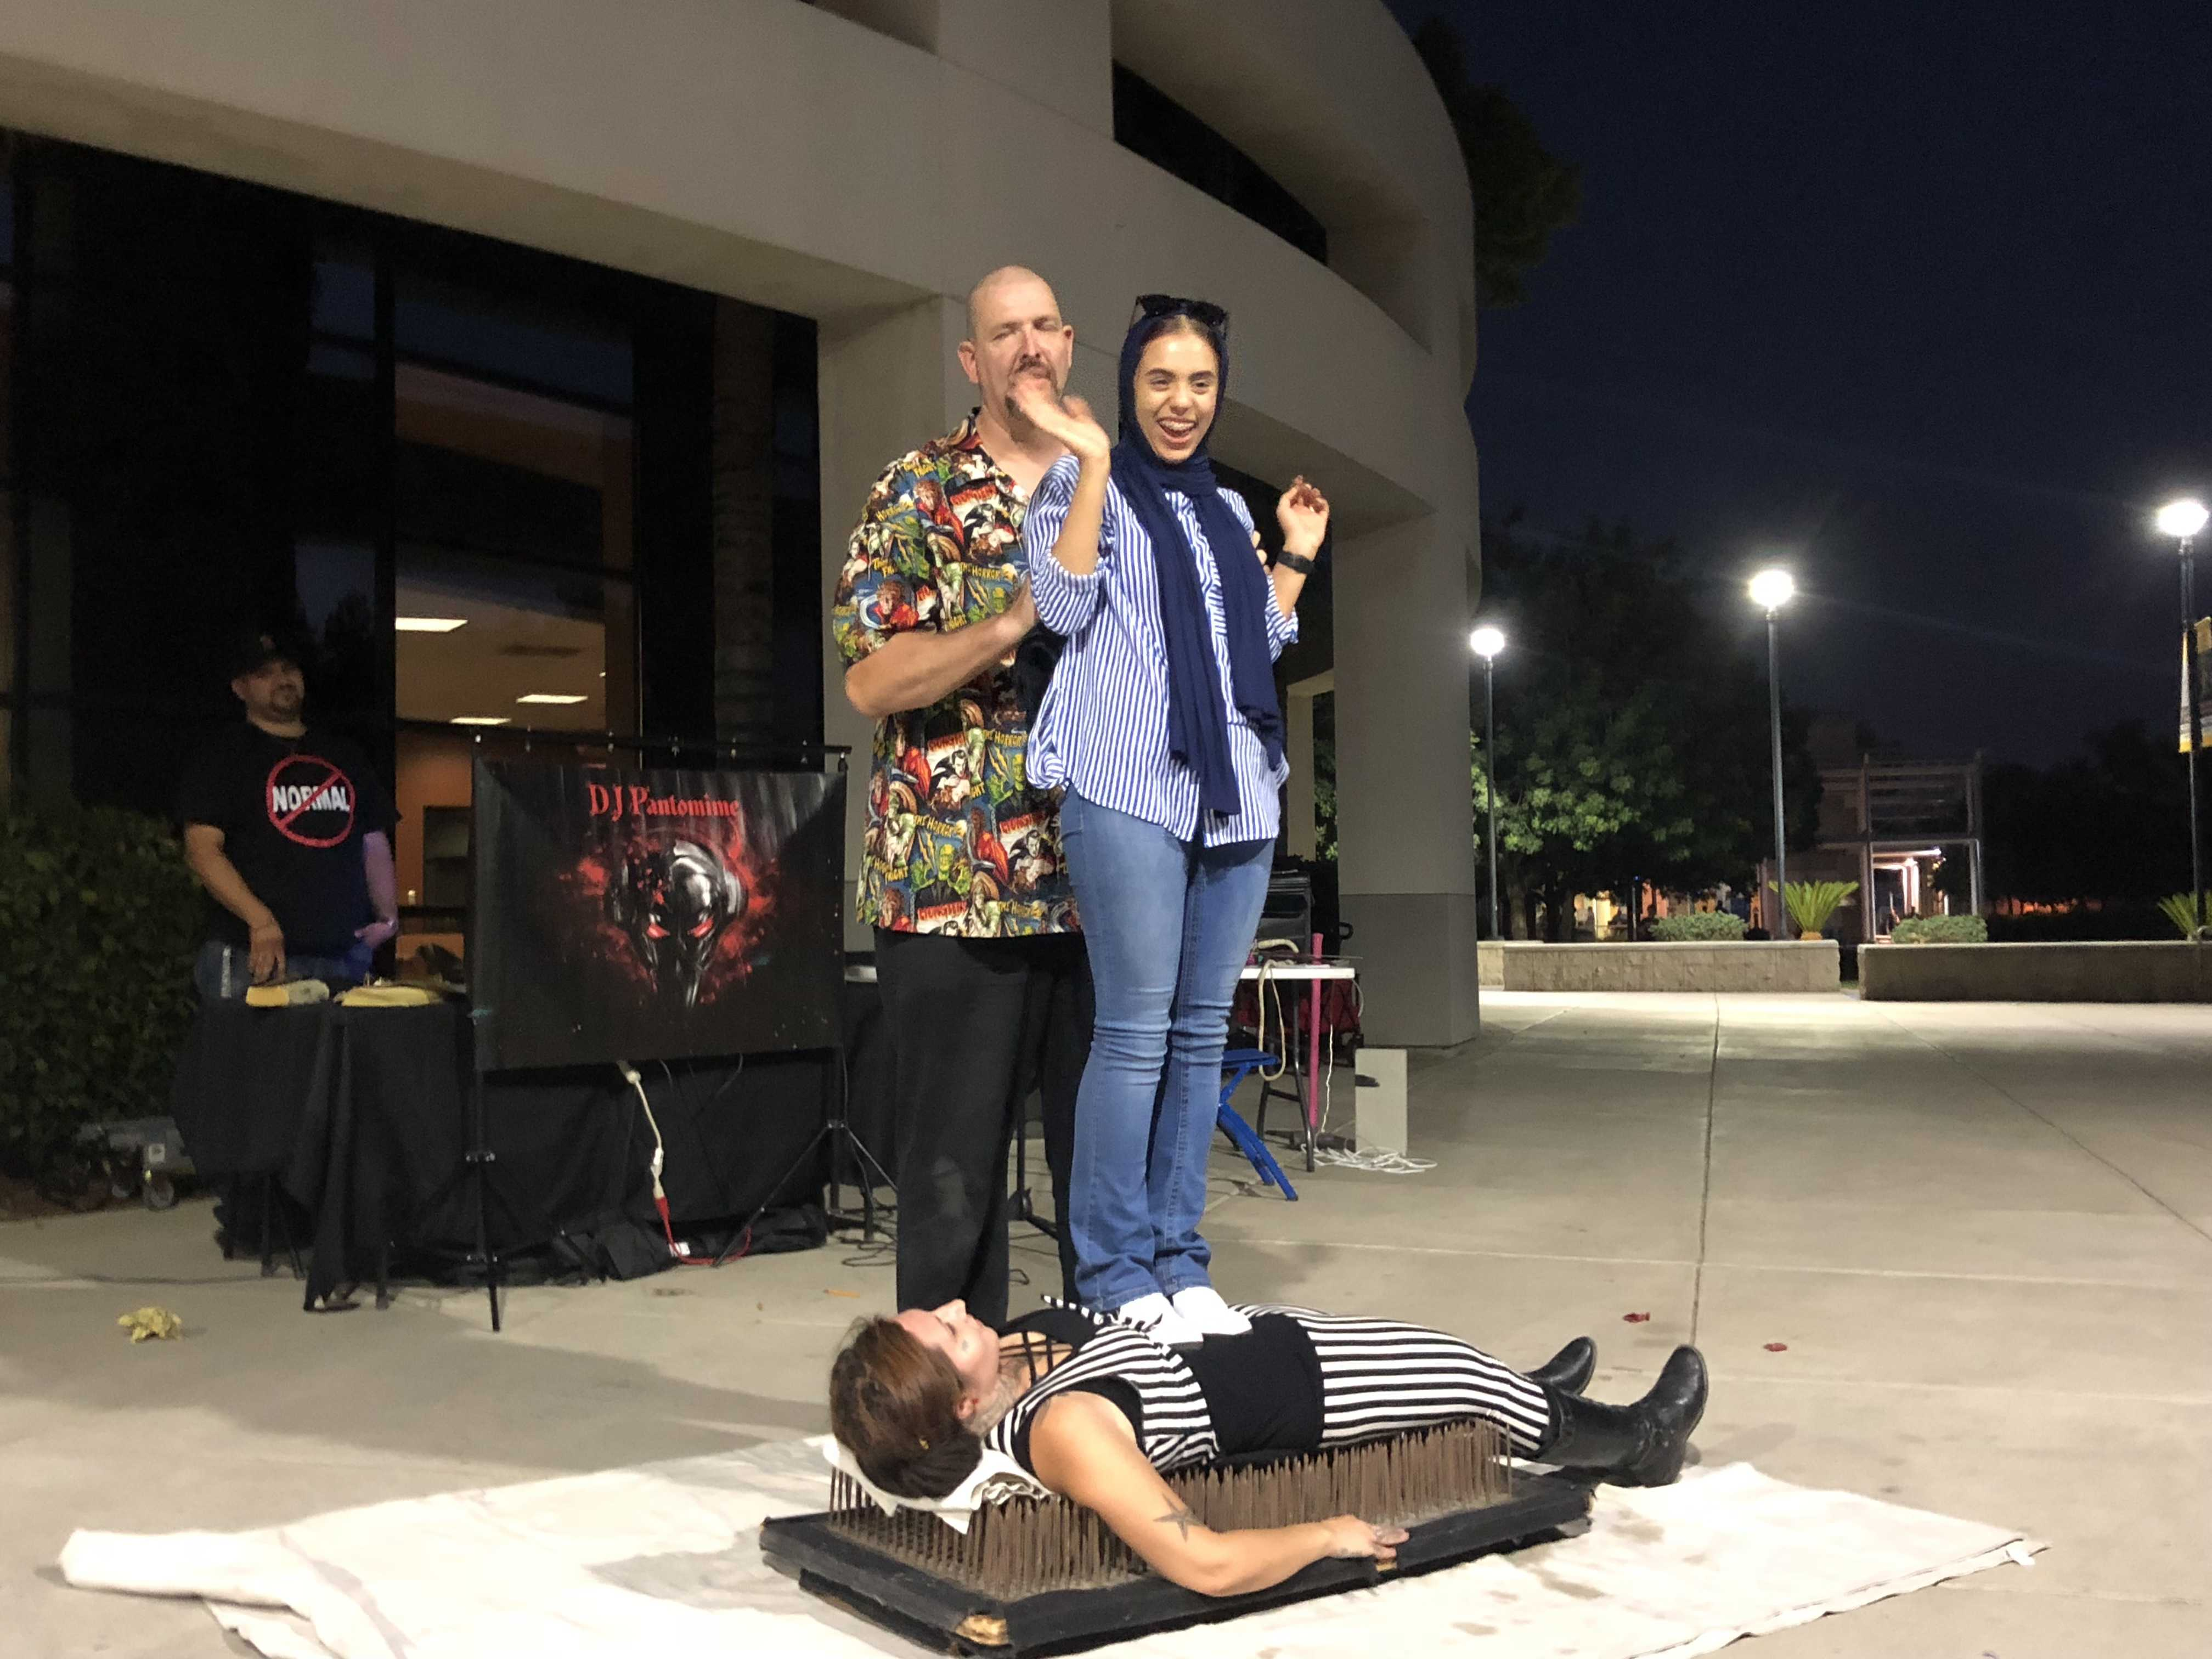 Sideshow at Student Union leaves students shocked